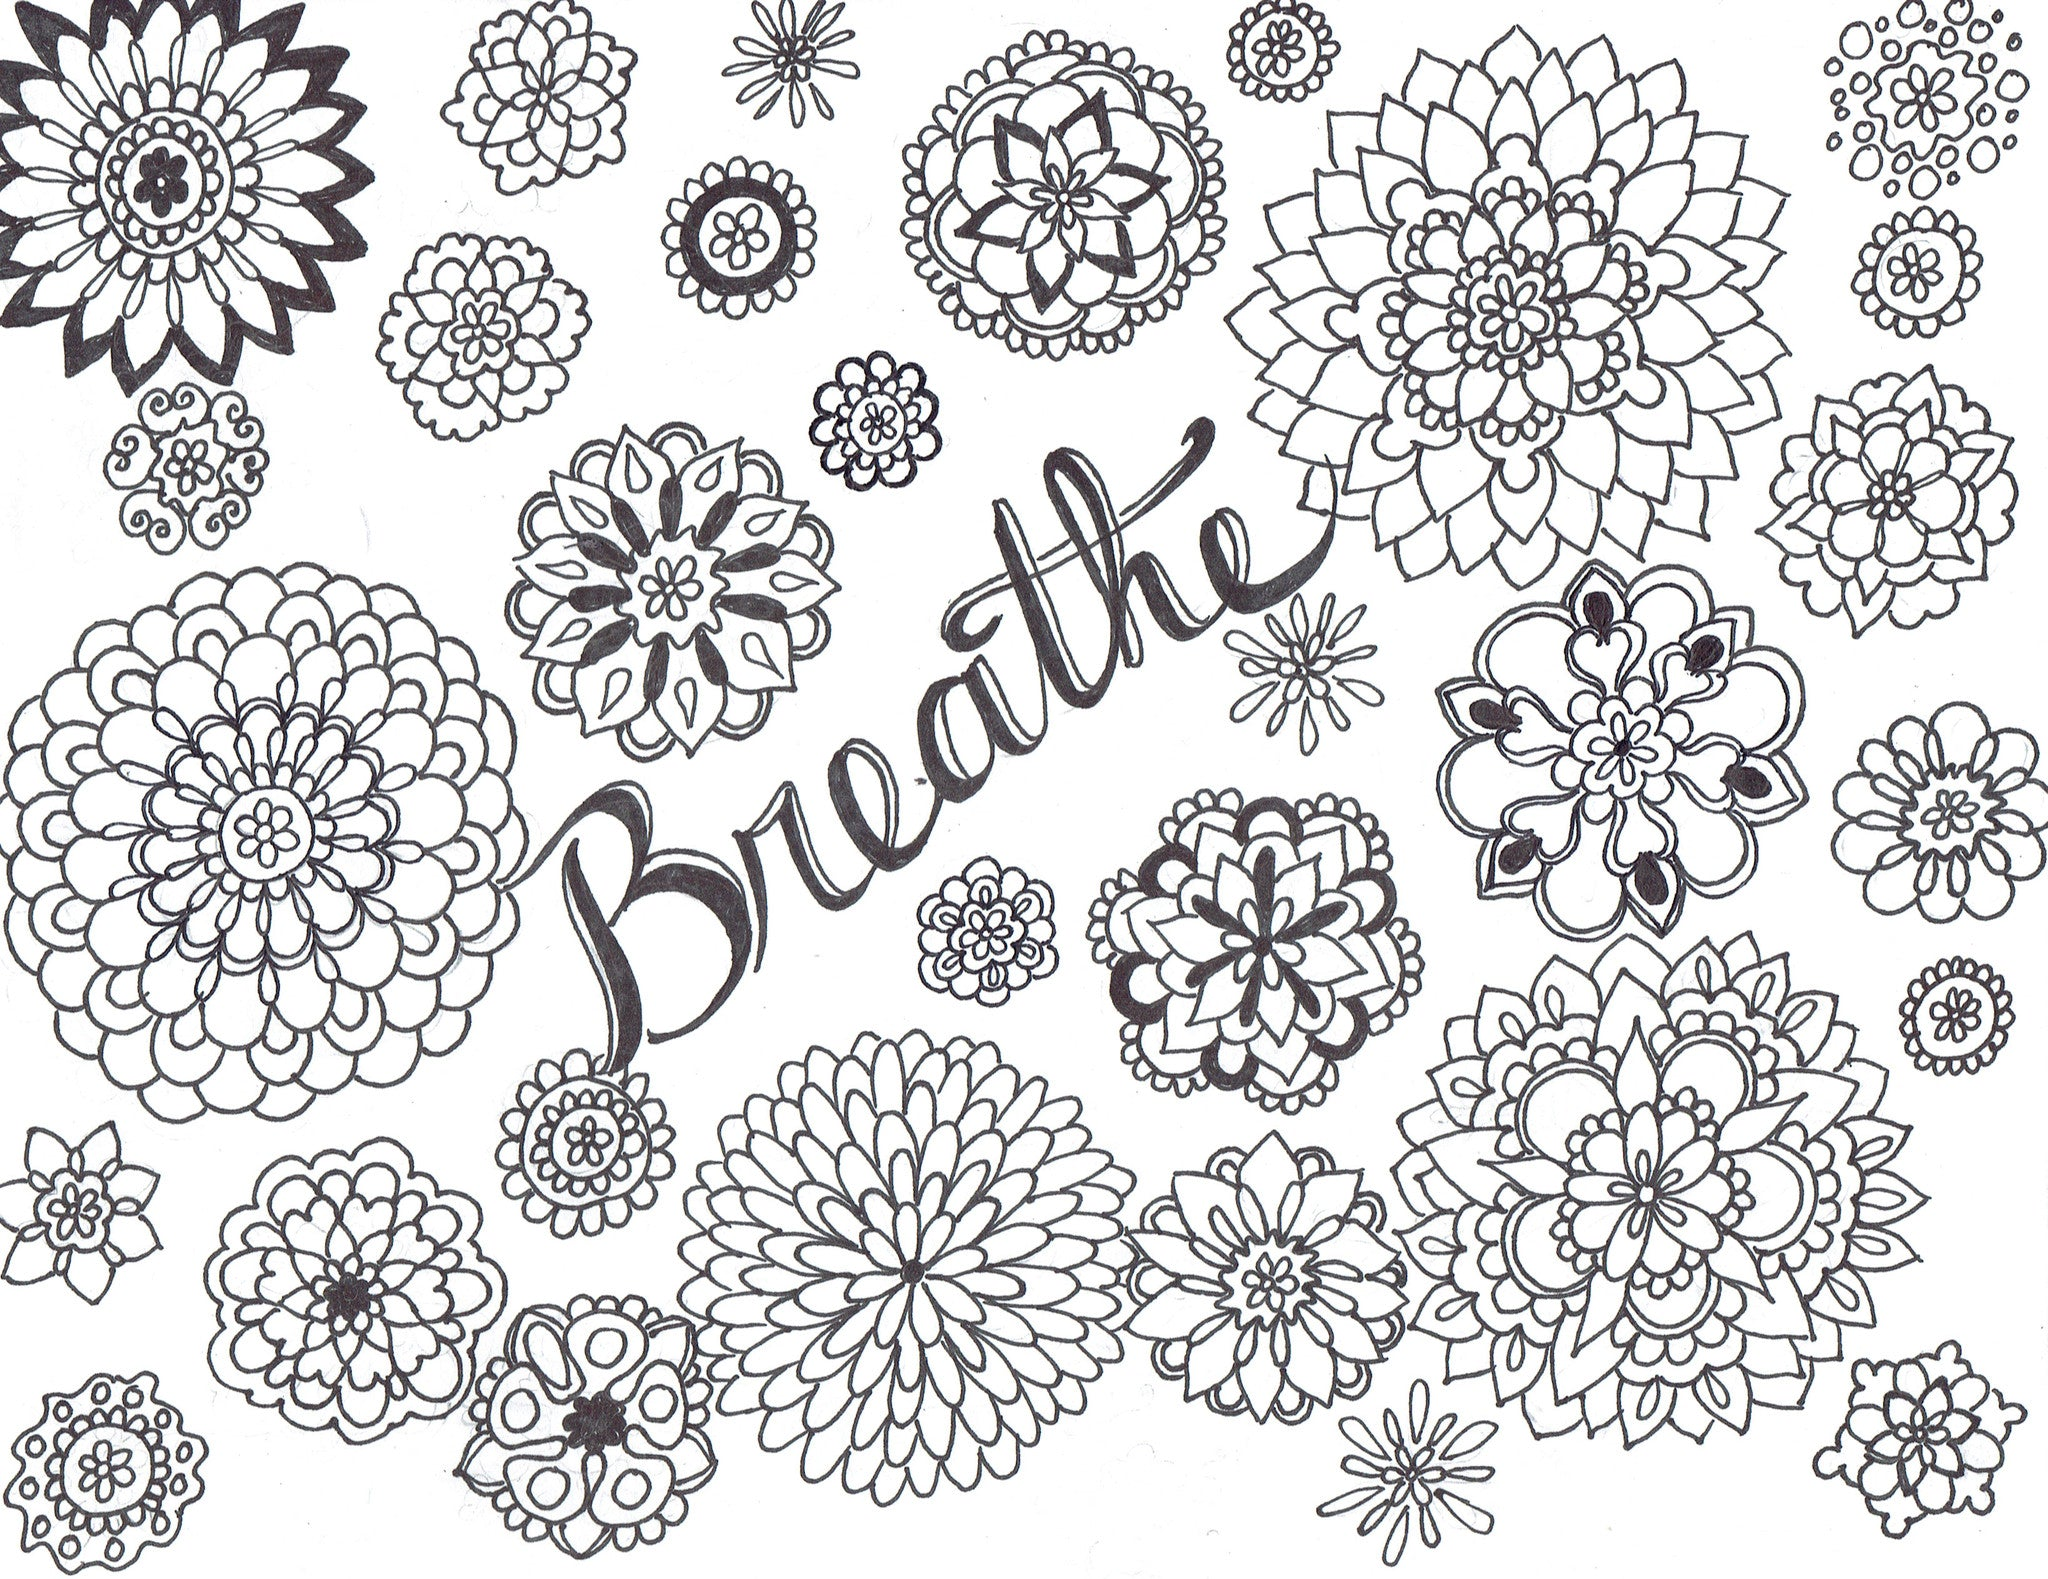 Breathe For Your Life FREE Coloring Page - You-Color